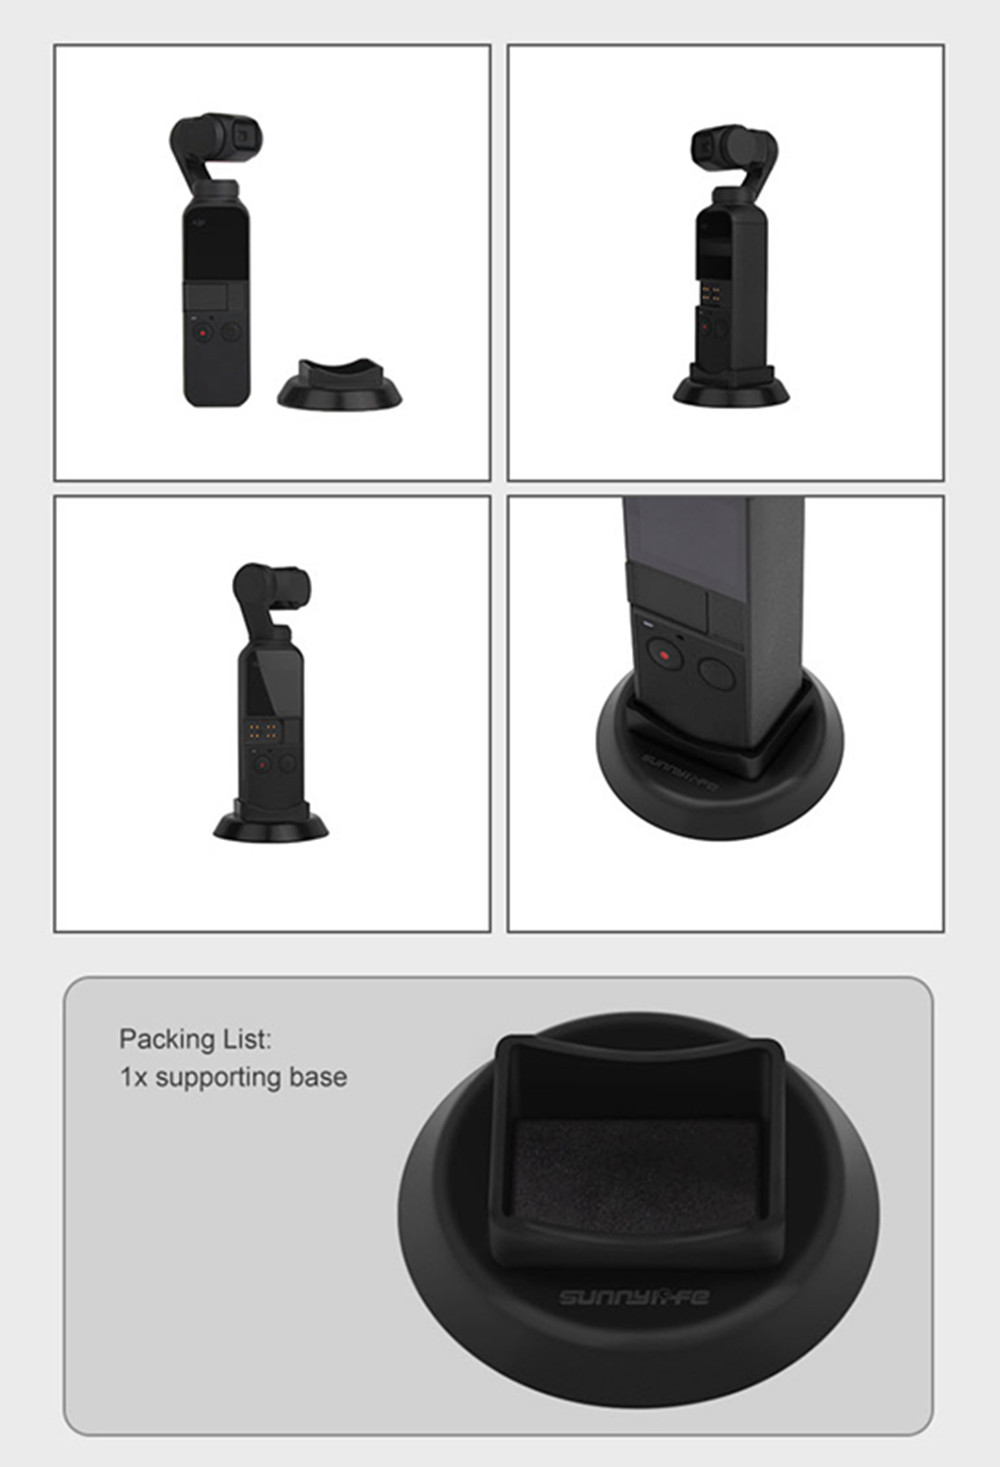 Handheld Gimbal Camera Supporting Base Desktop Stand for DJI OSMO Pocket- Black